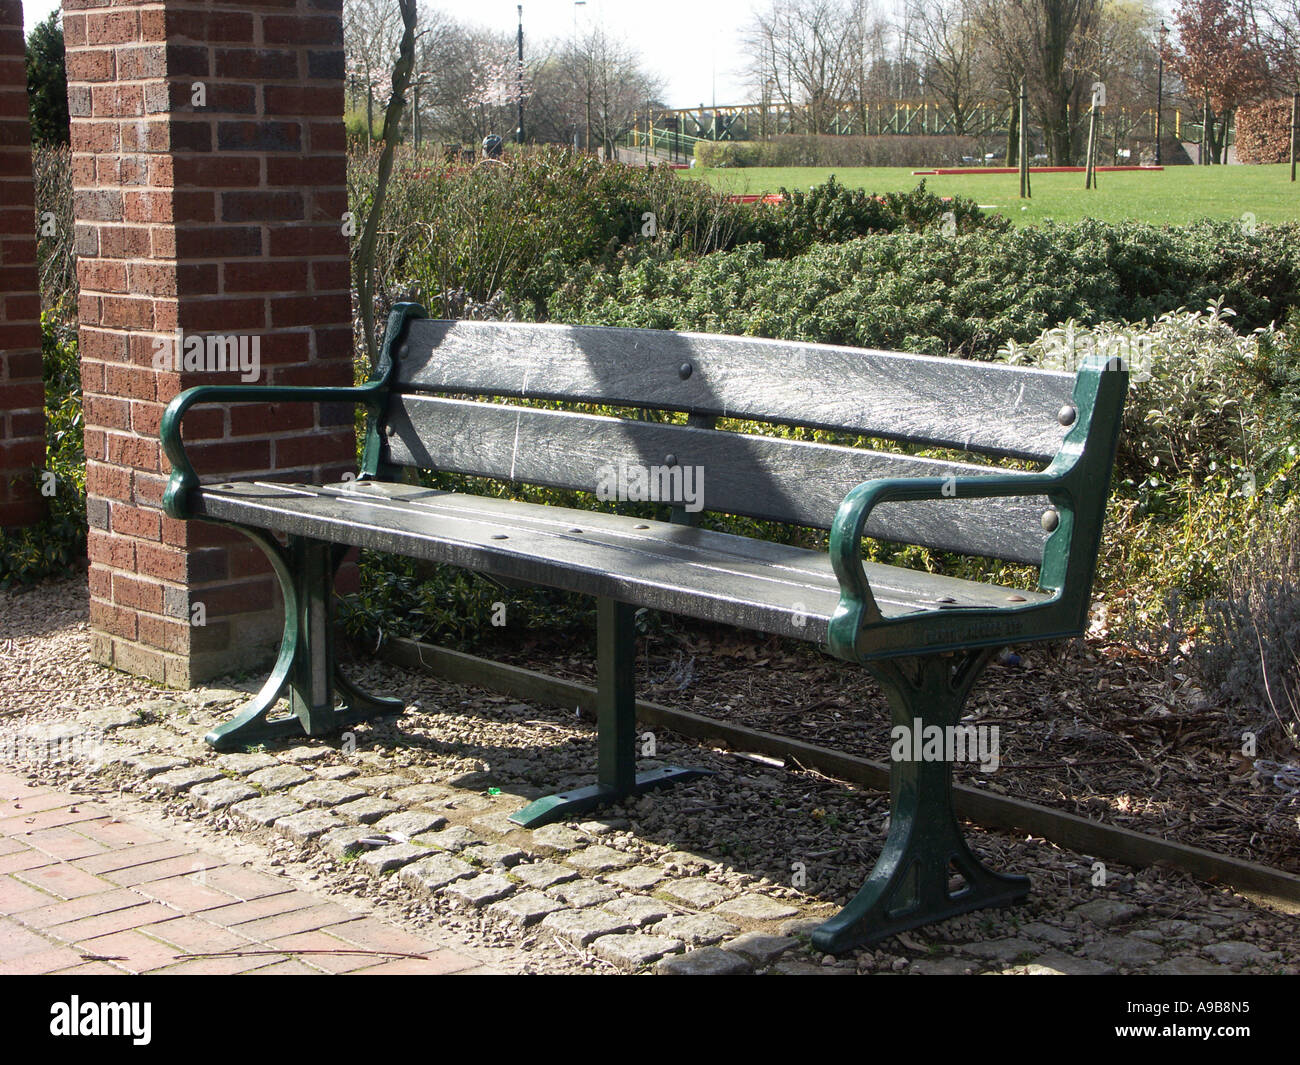 Park Bench With Seating Made From Recycled Plastic Stock Photo Alamy